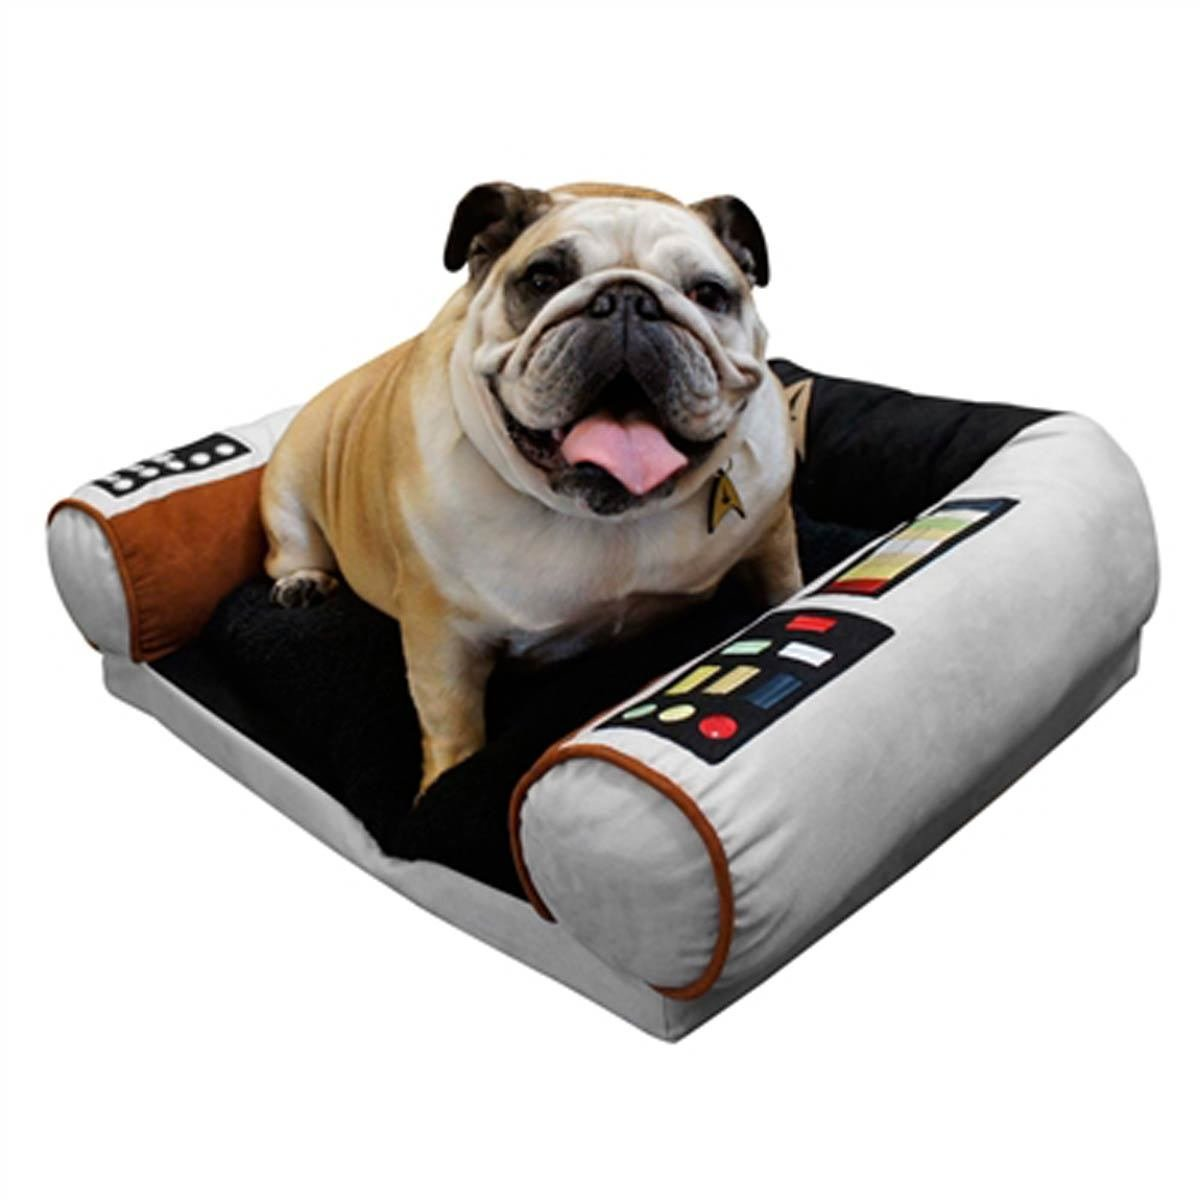 Star Trek Dog Bed - Captain's Chair - Command the Enterprise with your Dog - S / M